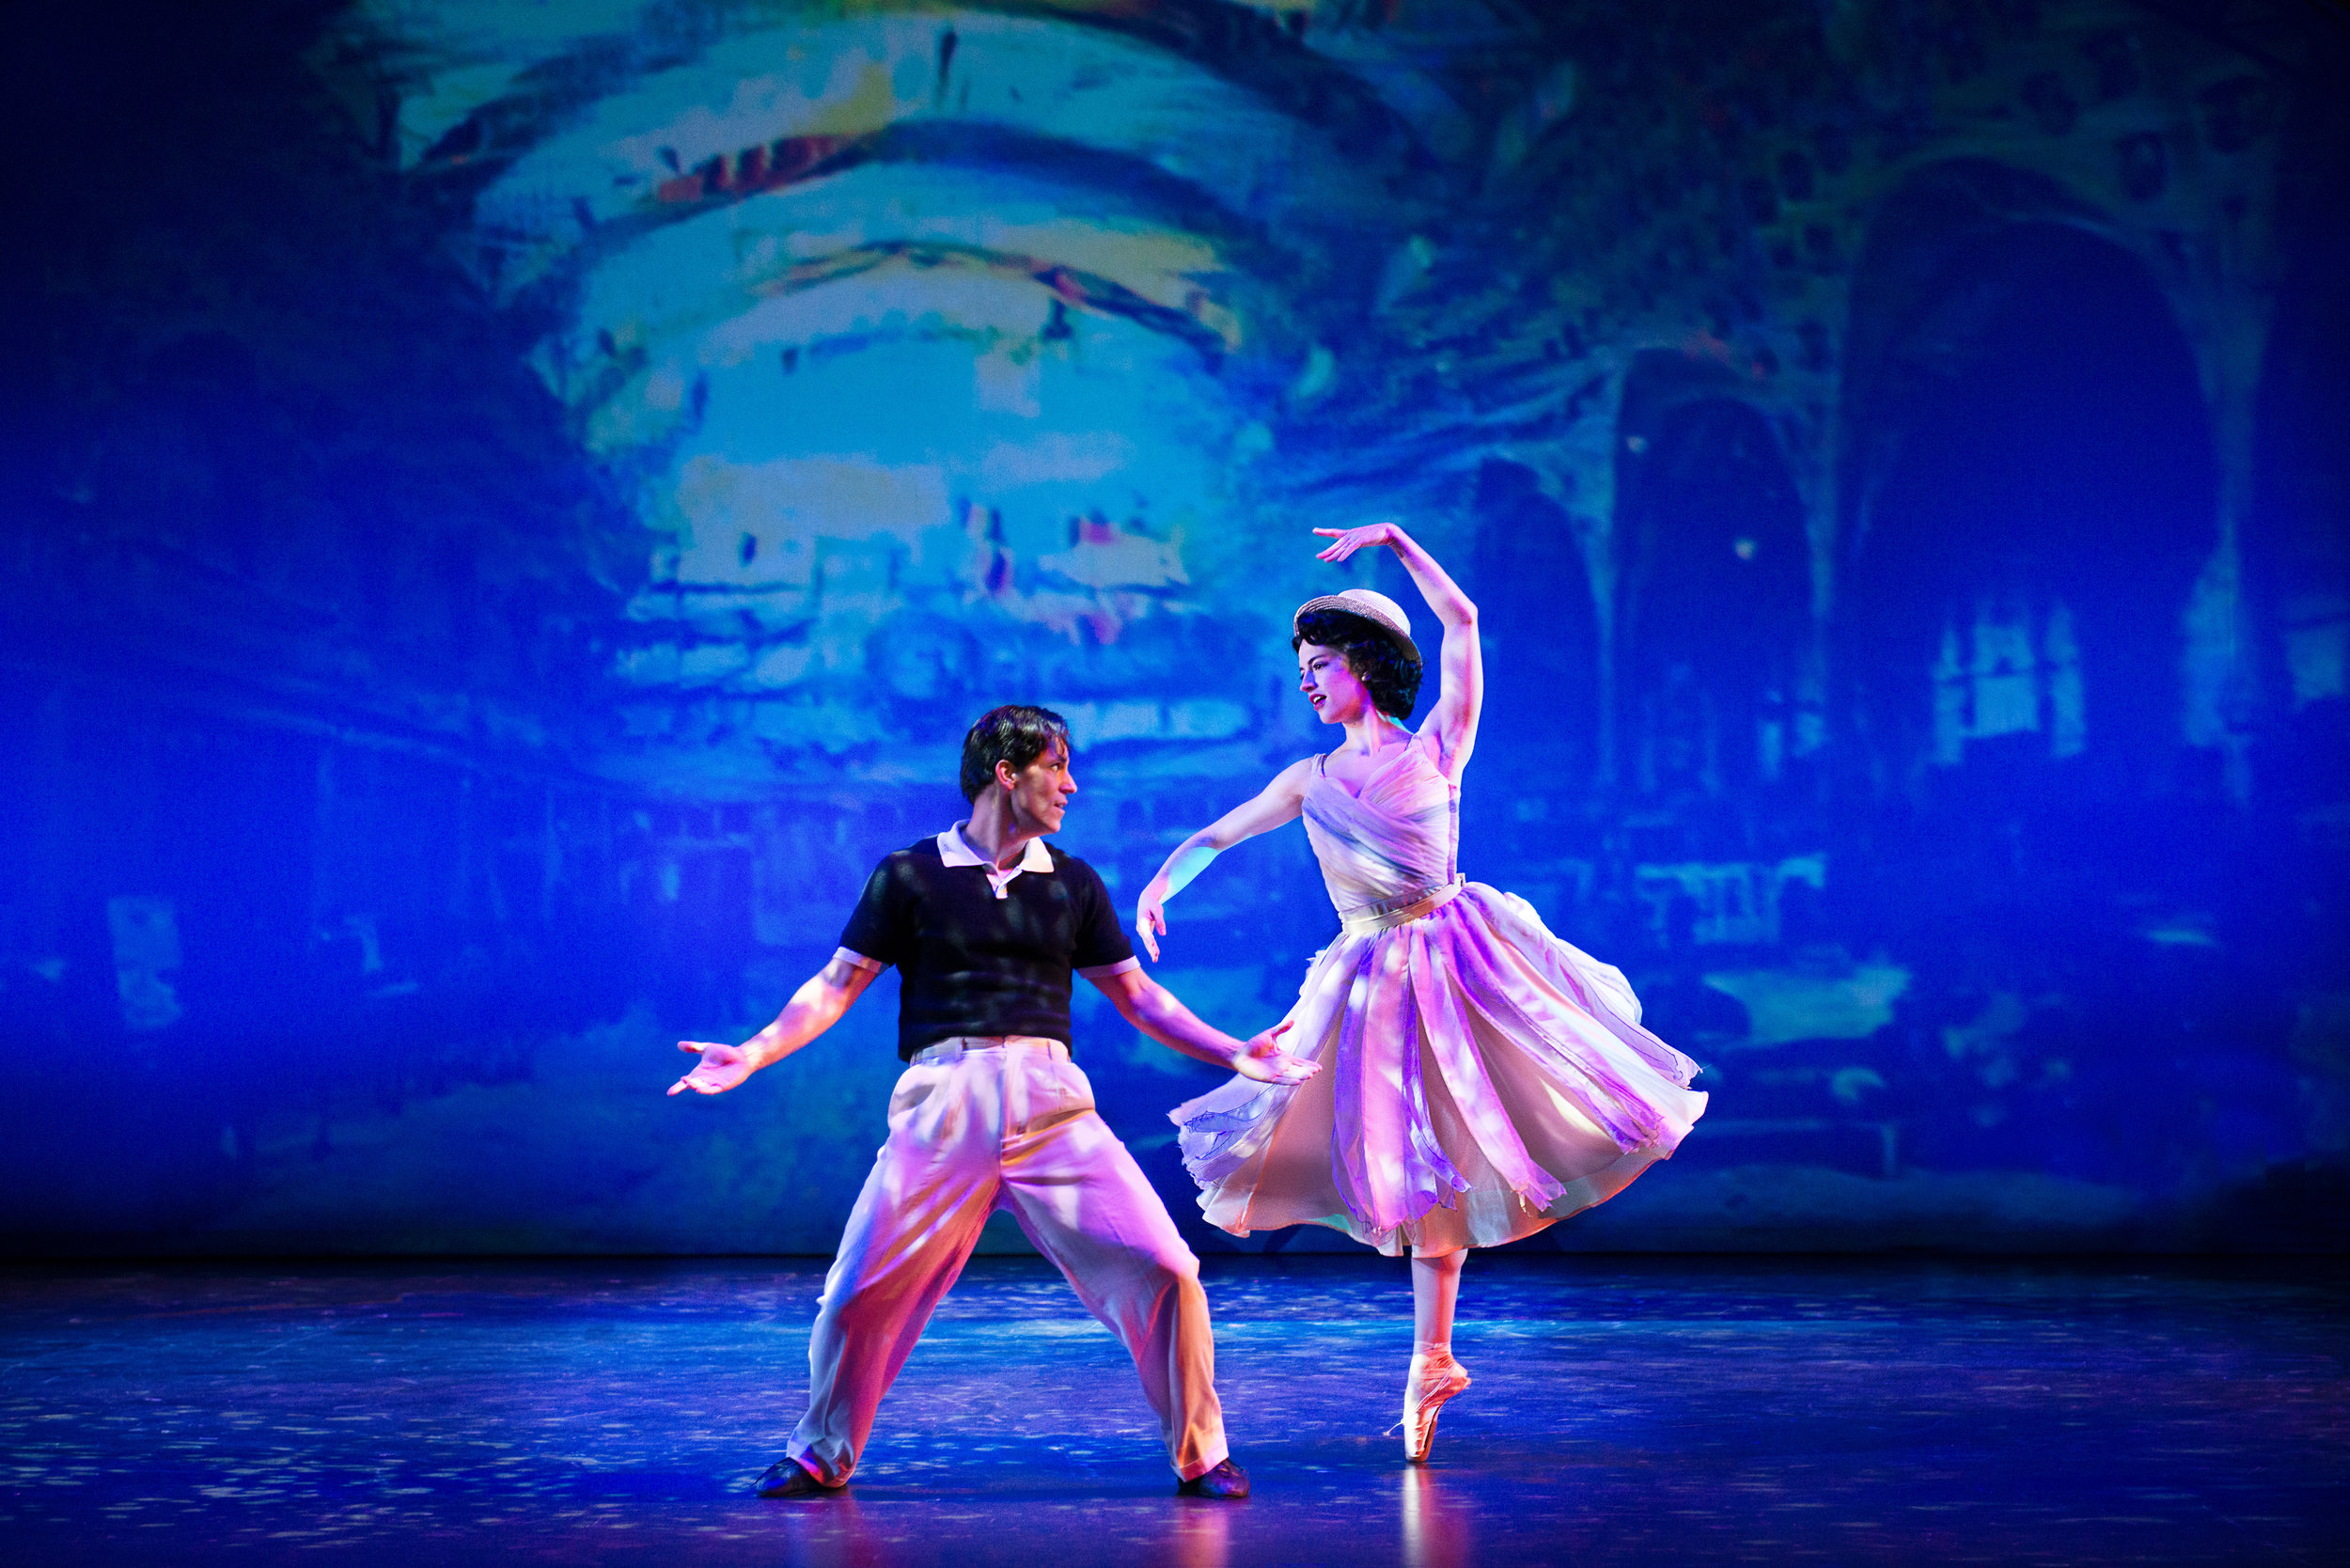 Clyde Alves and Julie Eicher in the 2018 production of An American in Paris. Photo by Gary Ng.